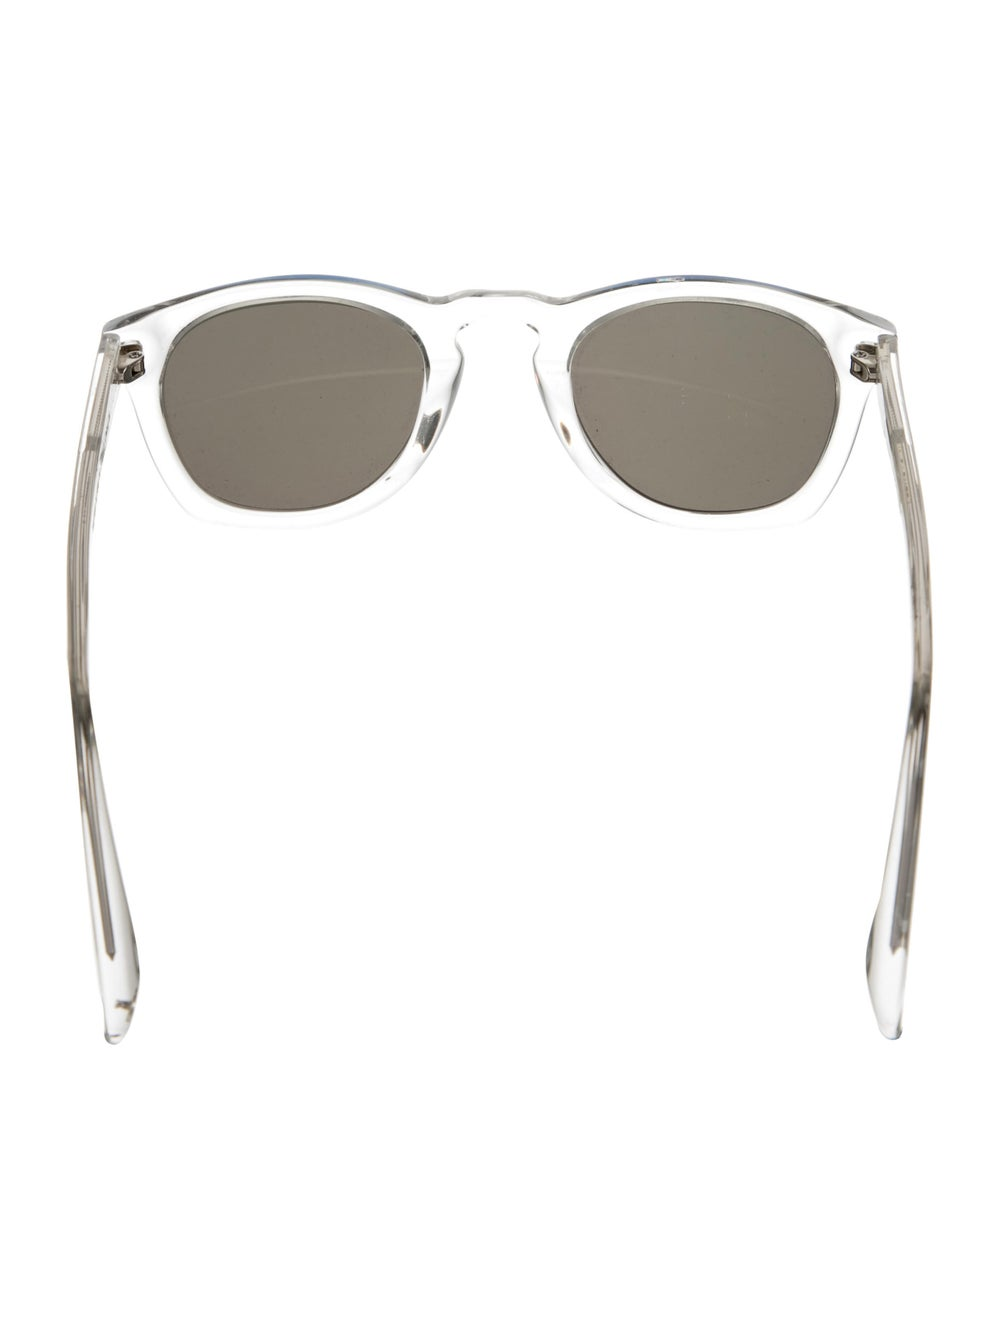 Warby Parker Topper Reflective Sunglasses Clear - image 3